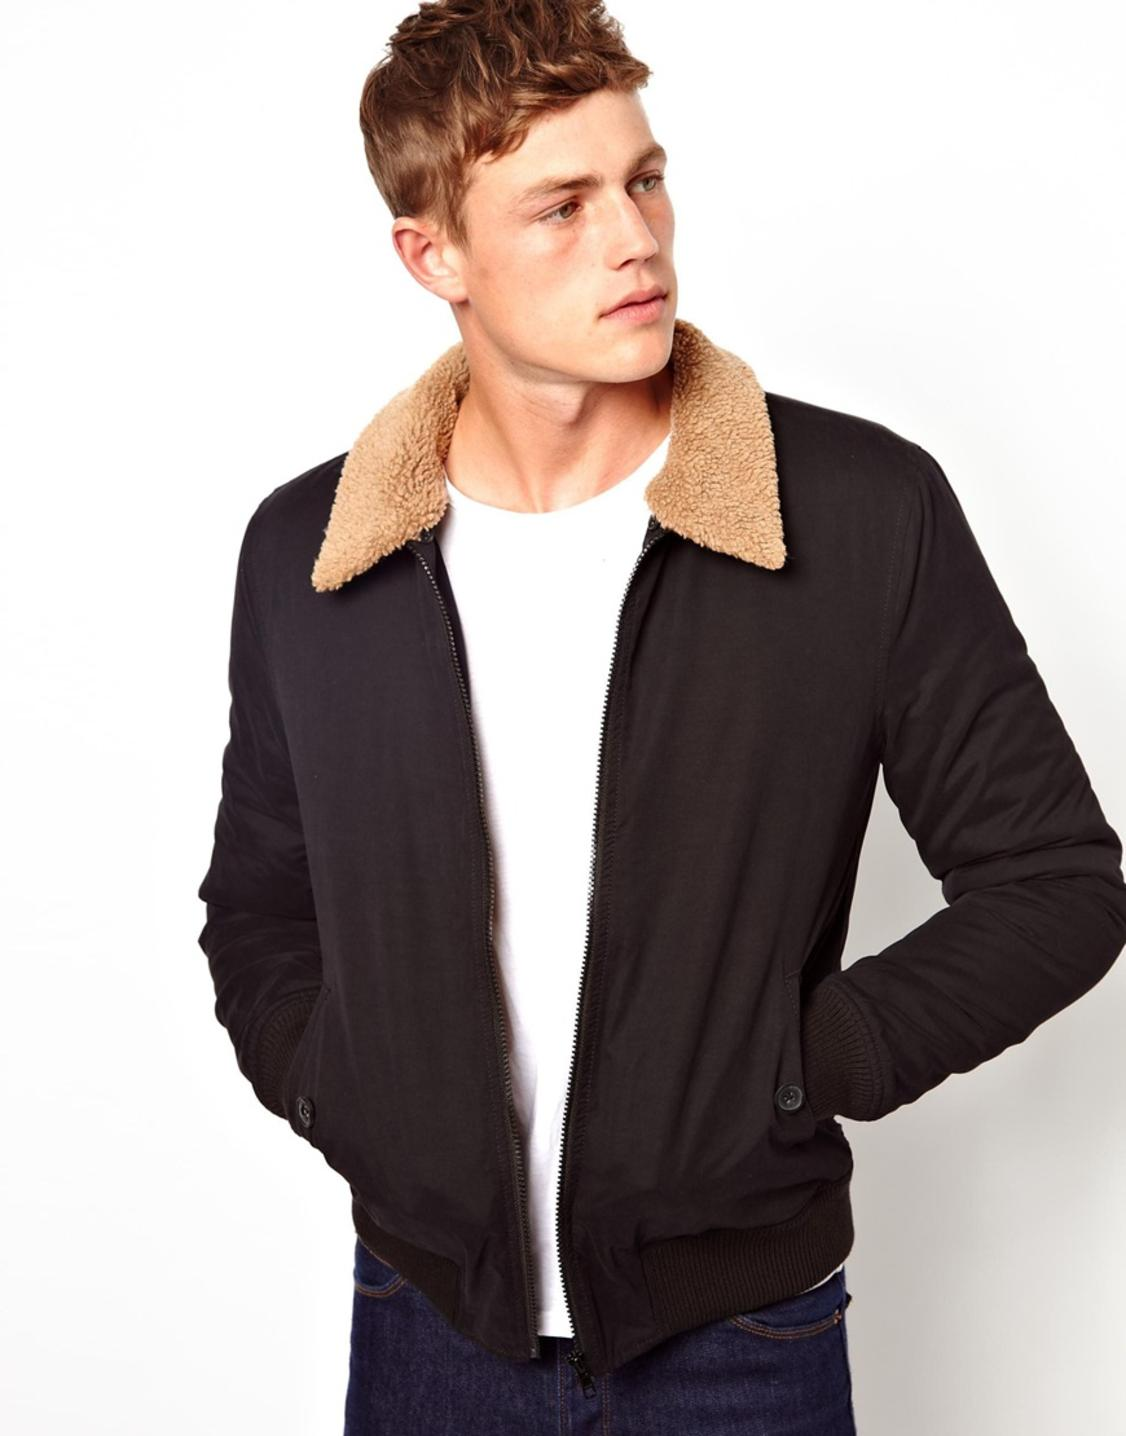 Bomber Jacket Styles for Men (15)